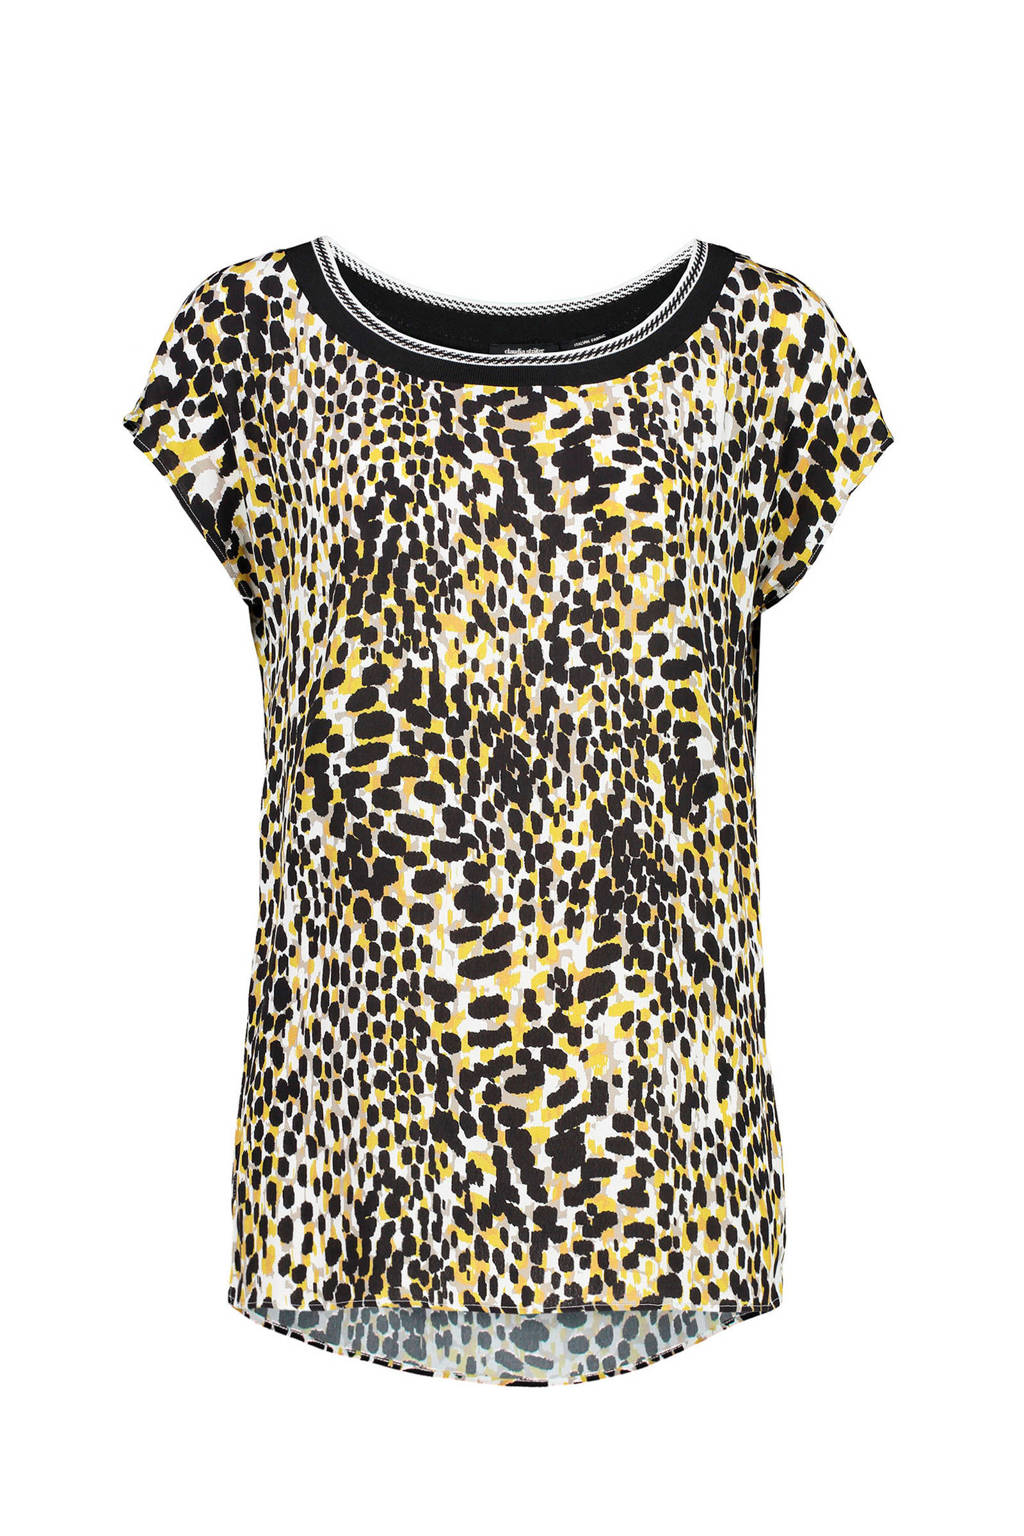 Claudia Sträter top met all over print, sand